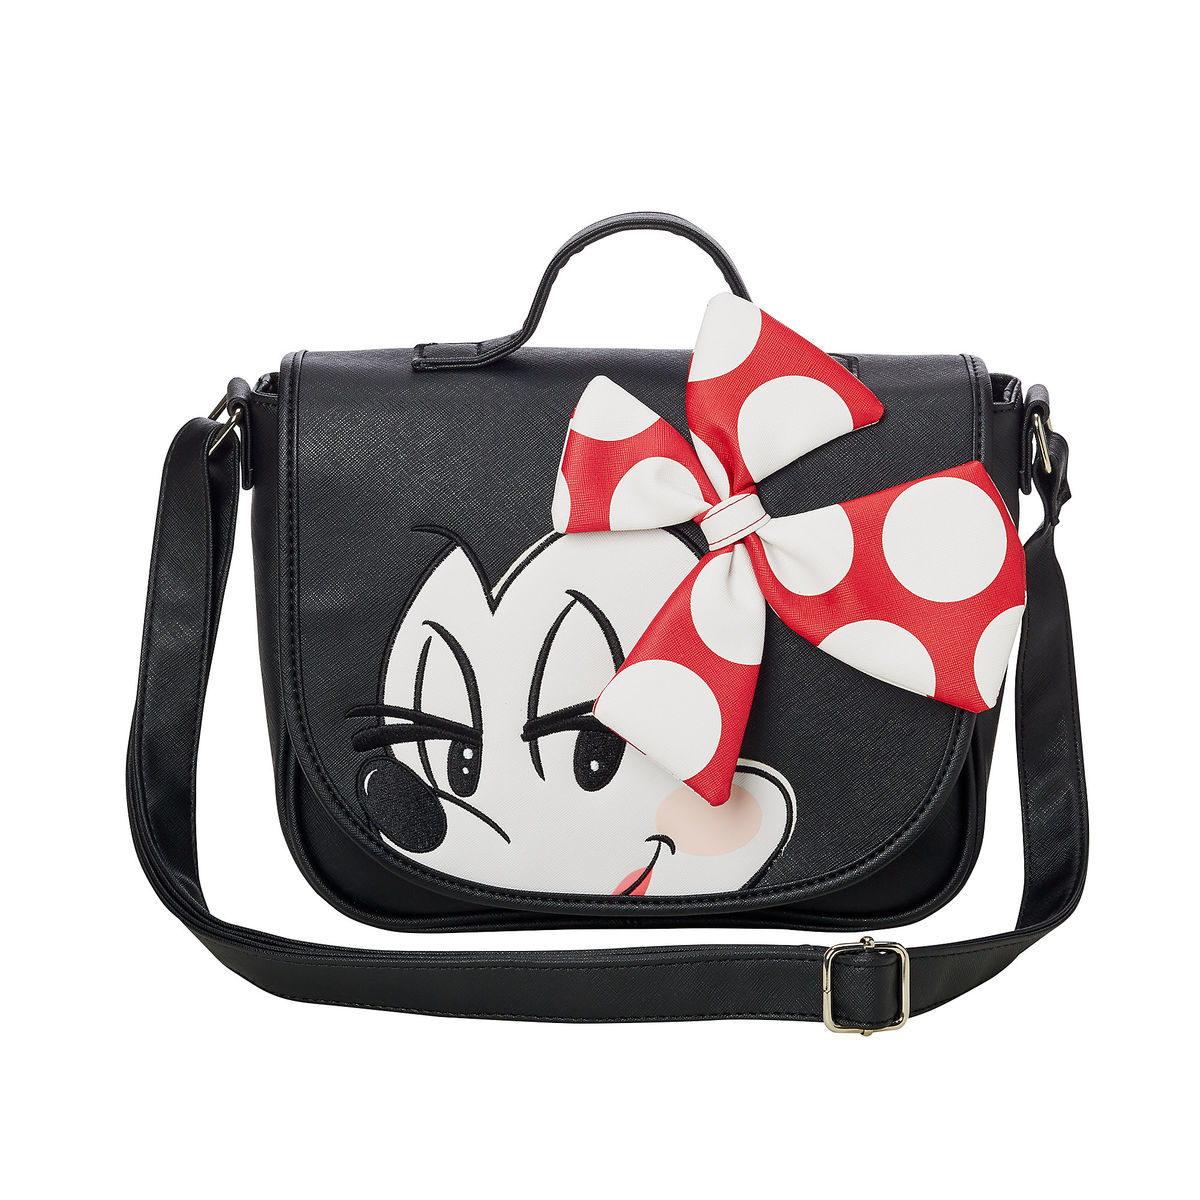 6c9c7773f41 Add to My Lists. Disney Loungefly Crossbody Bag - Minnie Mouse with Bow